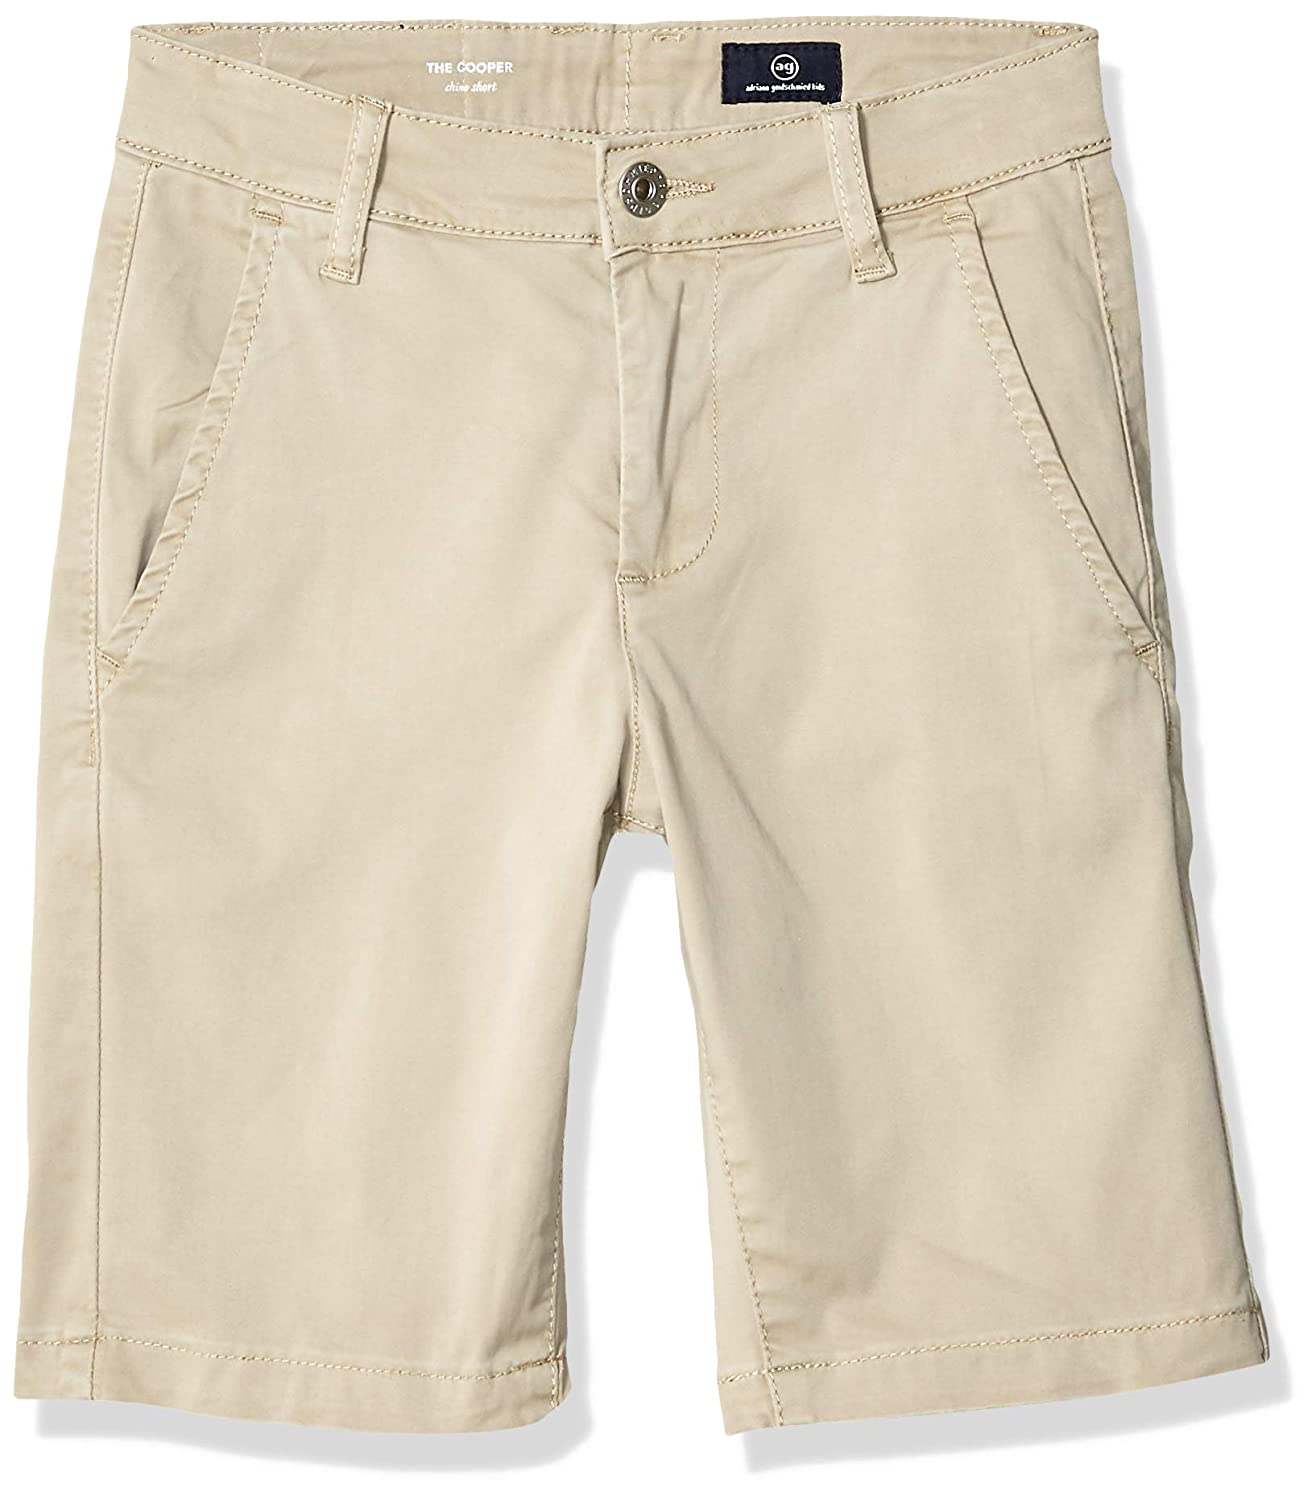 AG Adriano Goldschmied SHORTS ボーイズ